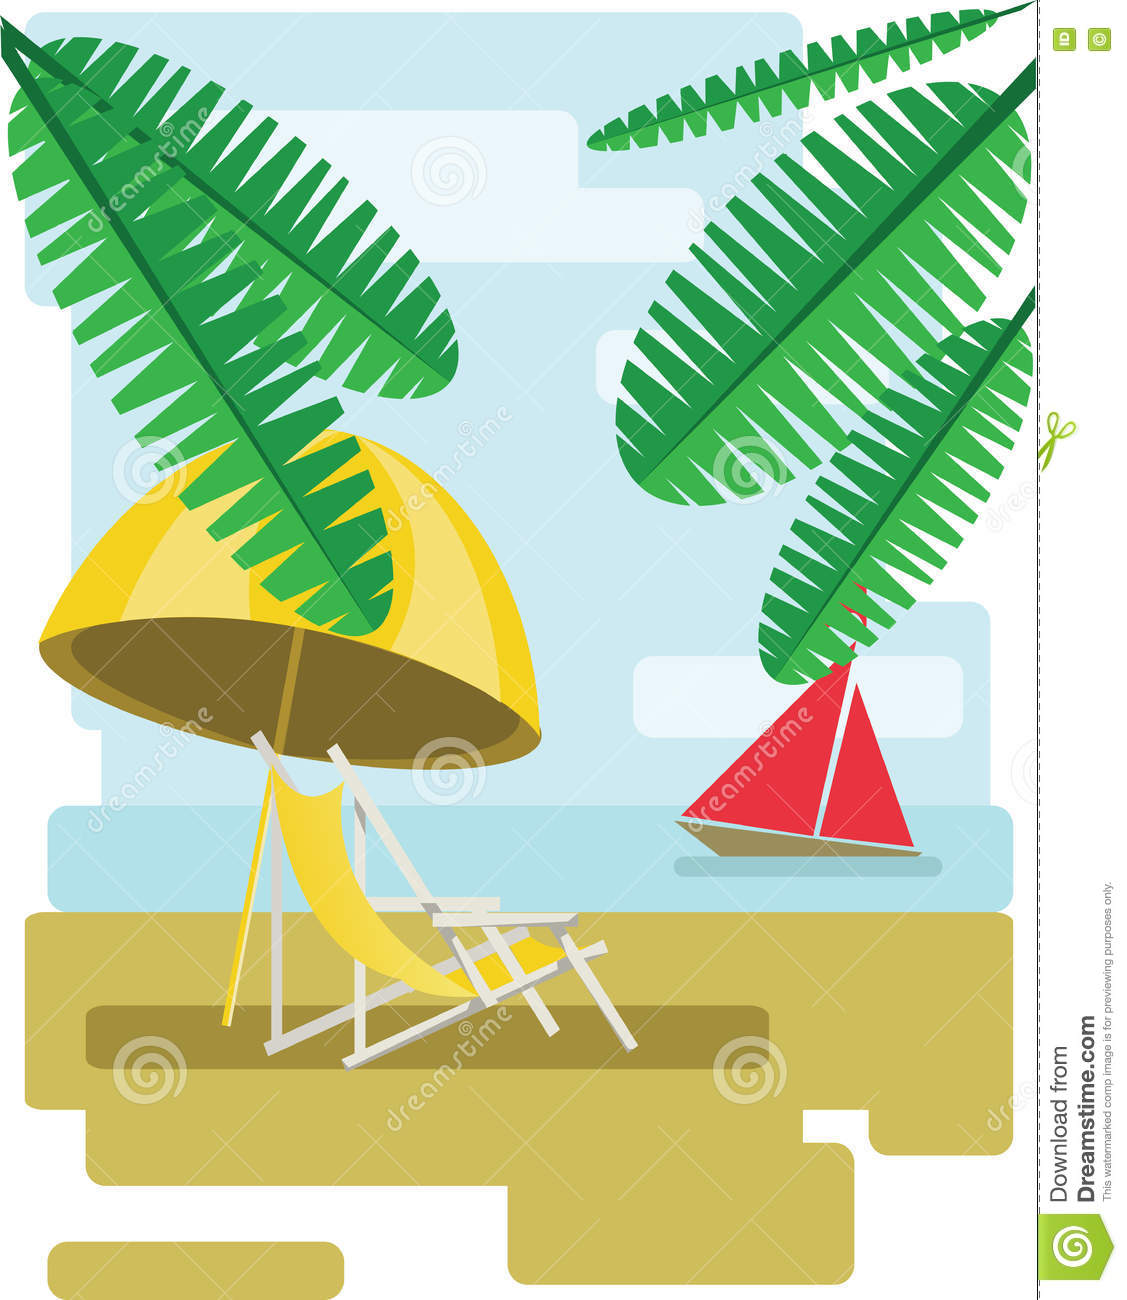 Abstract Design With Palm Leaves, Sand, Beach Umrella And Chair.